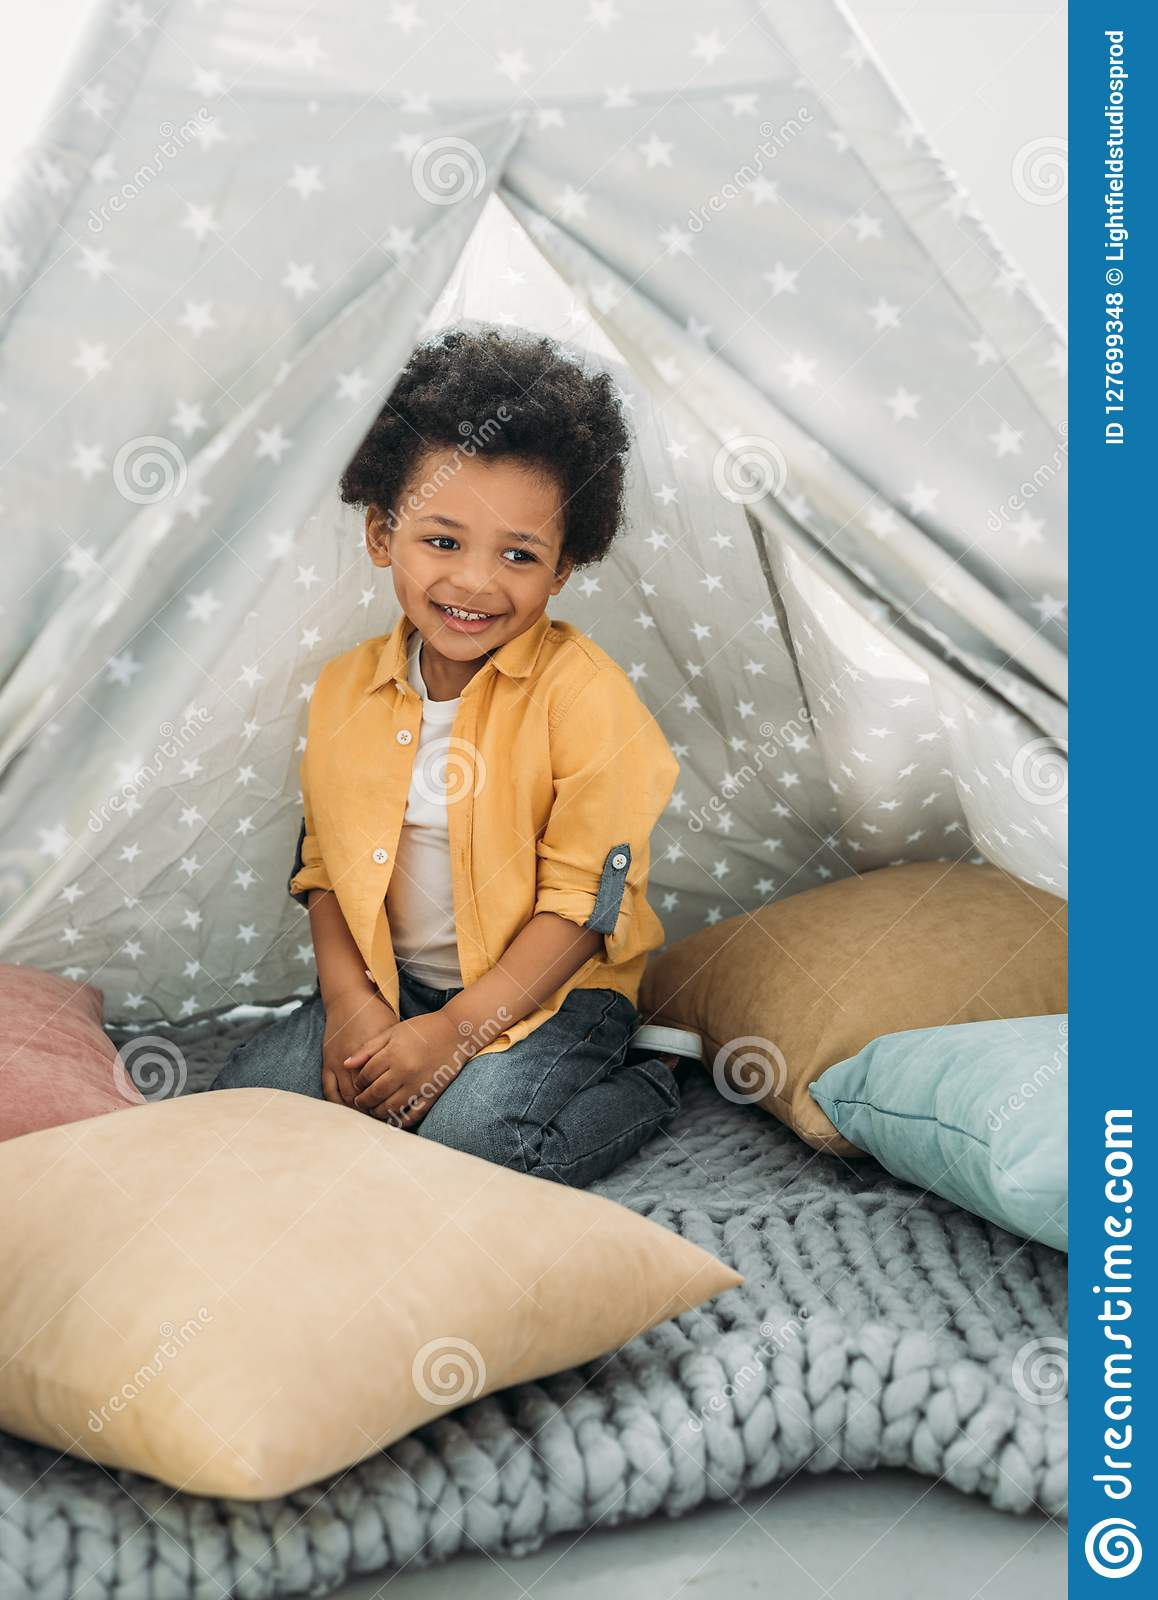 little smiling african american boy sitting in teepee